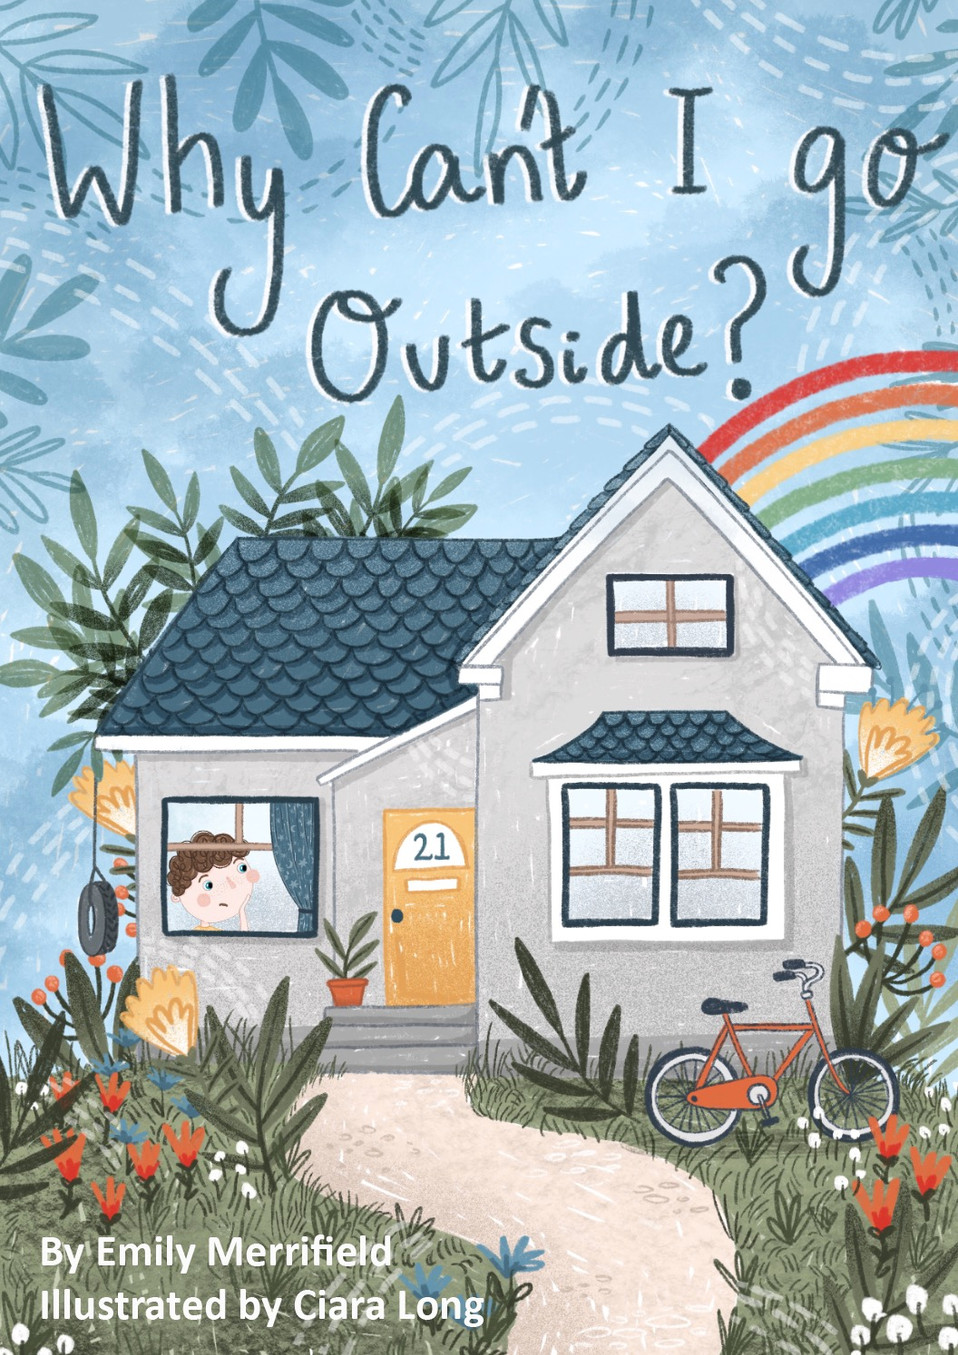 Why Cant I Go Outside? By Emily Merrifie